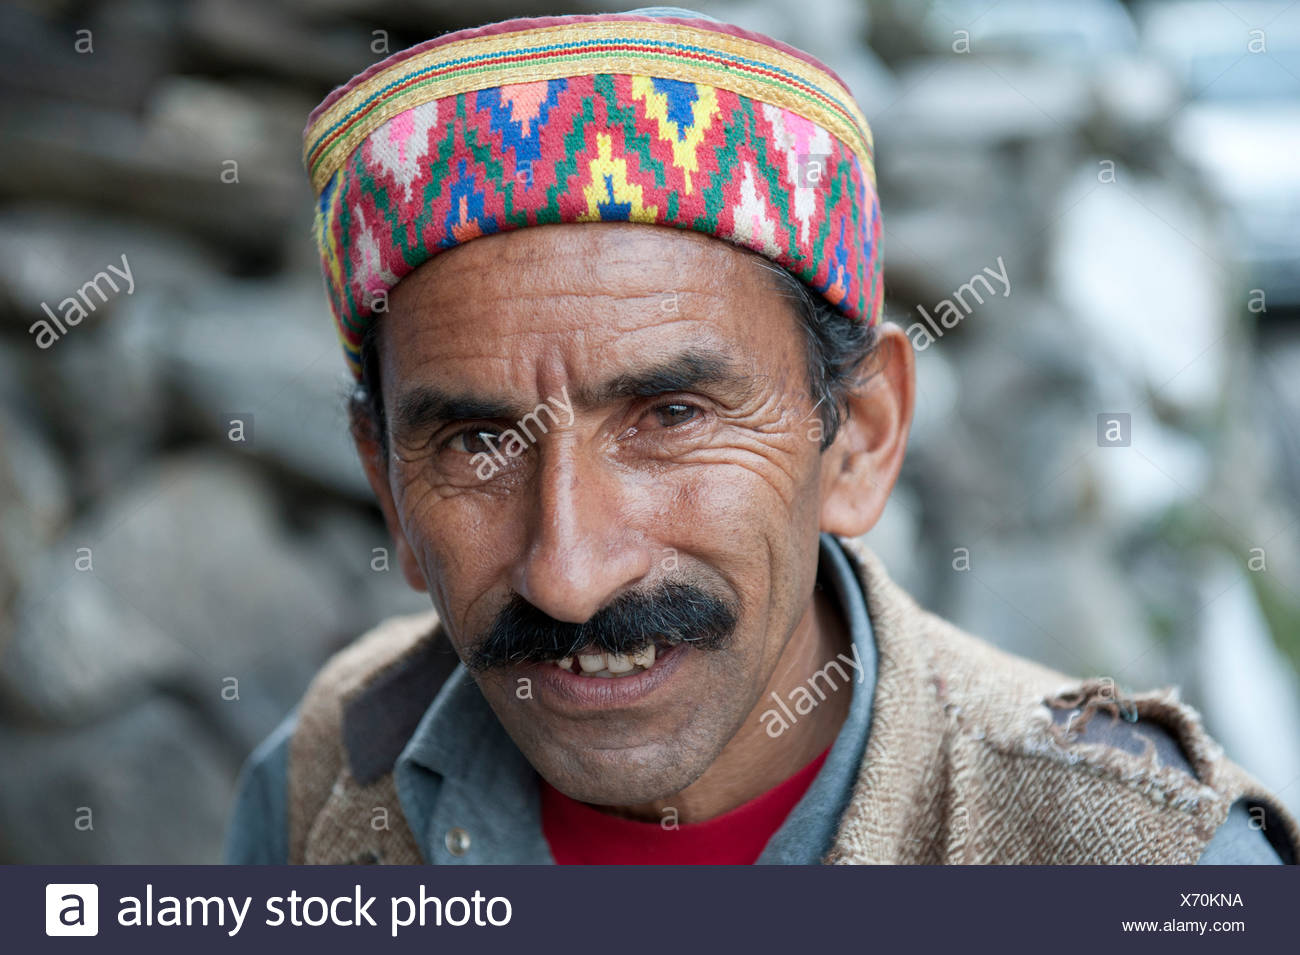 Portrait, Man wearing a typical brightly coloured decorated cap, Manali, Kullu district, the Himalayas, Himachal Pradesh, India Stock Photo